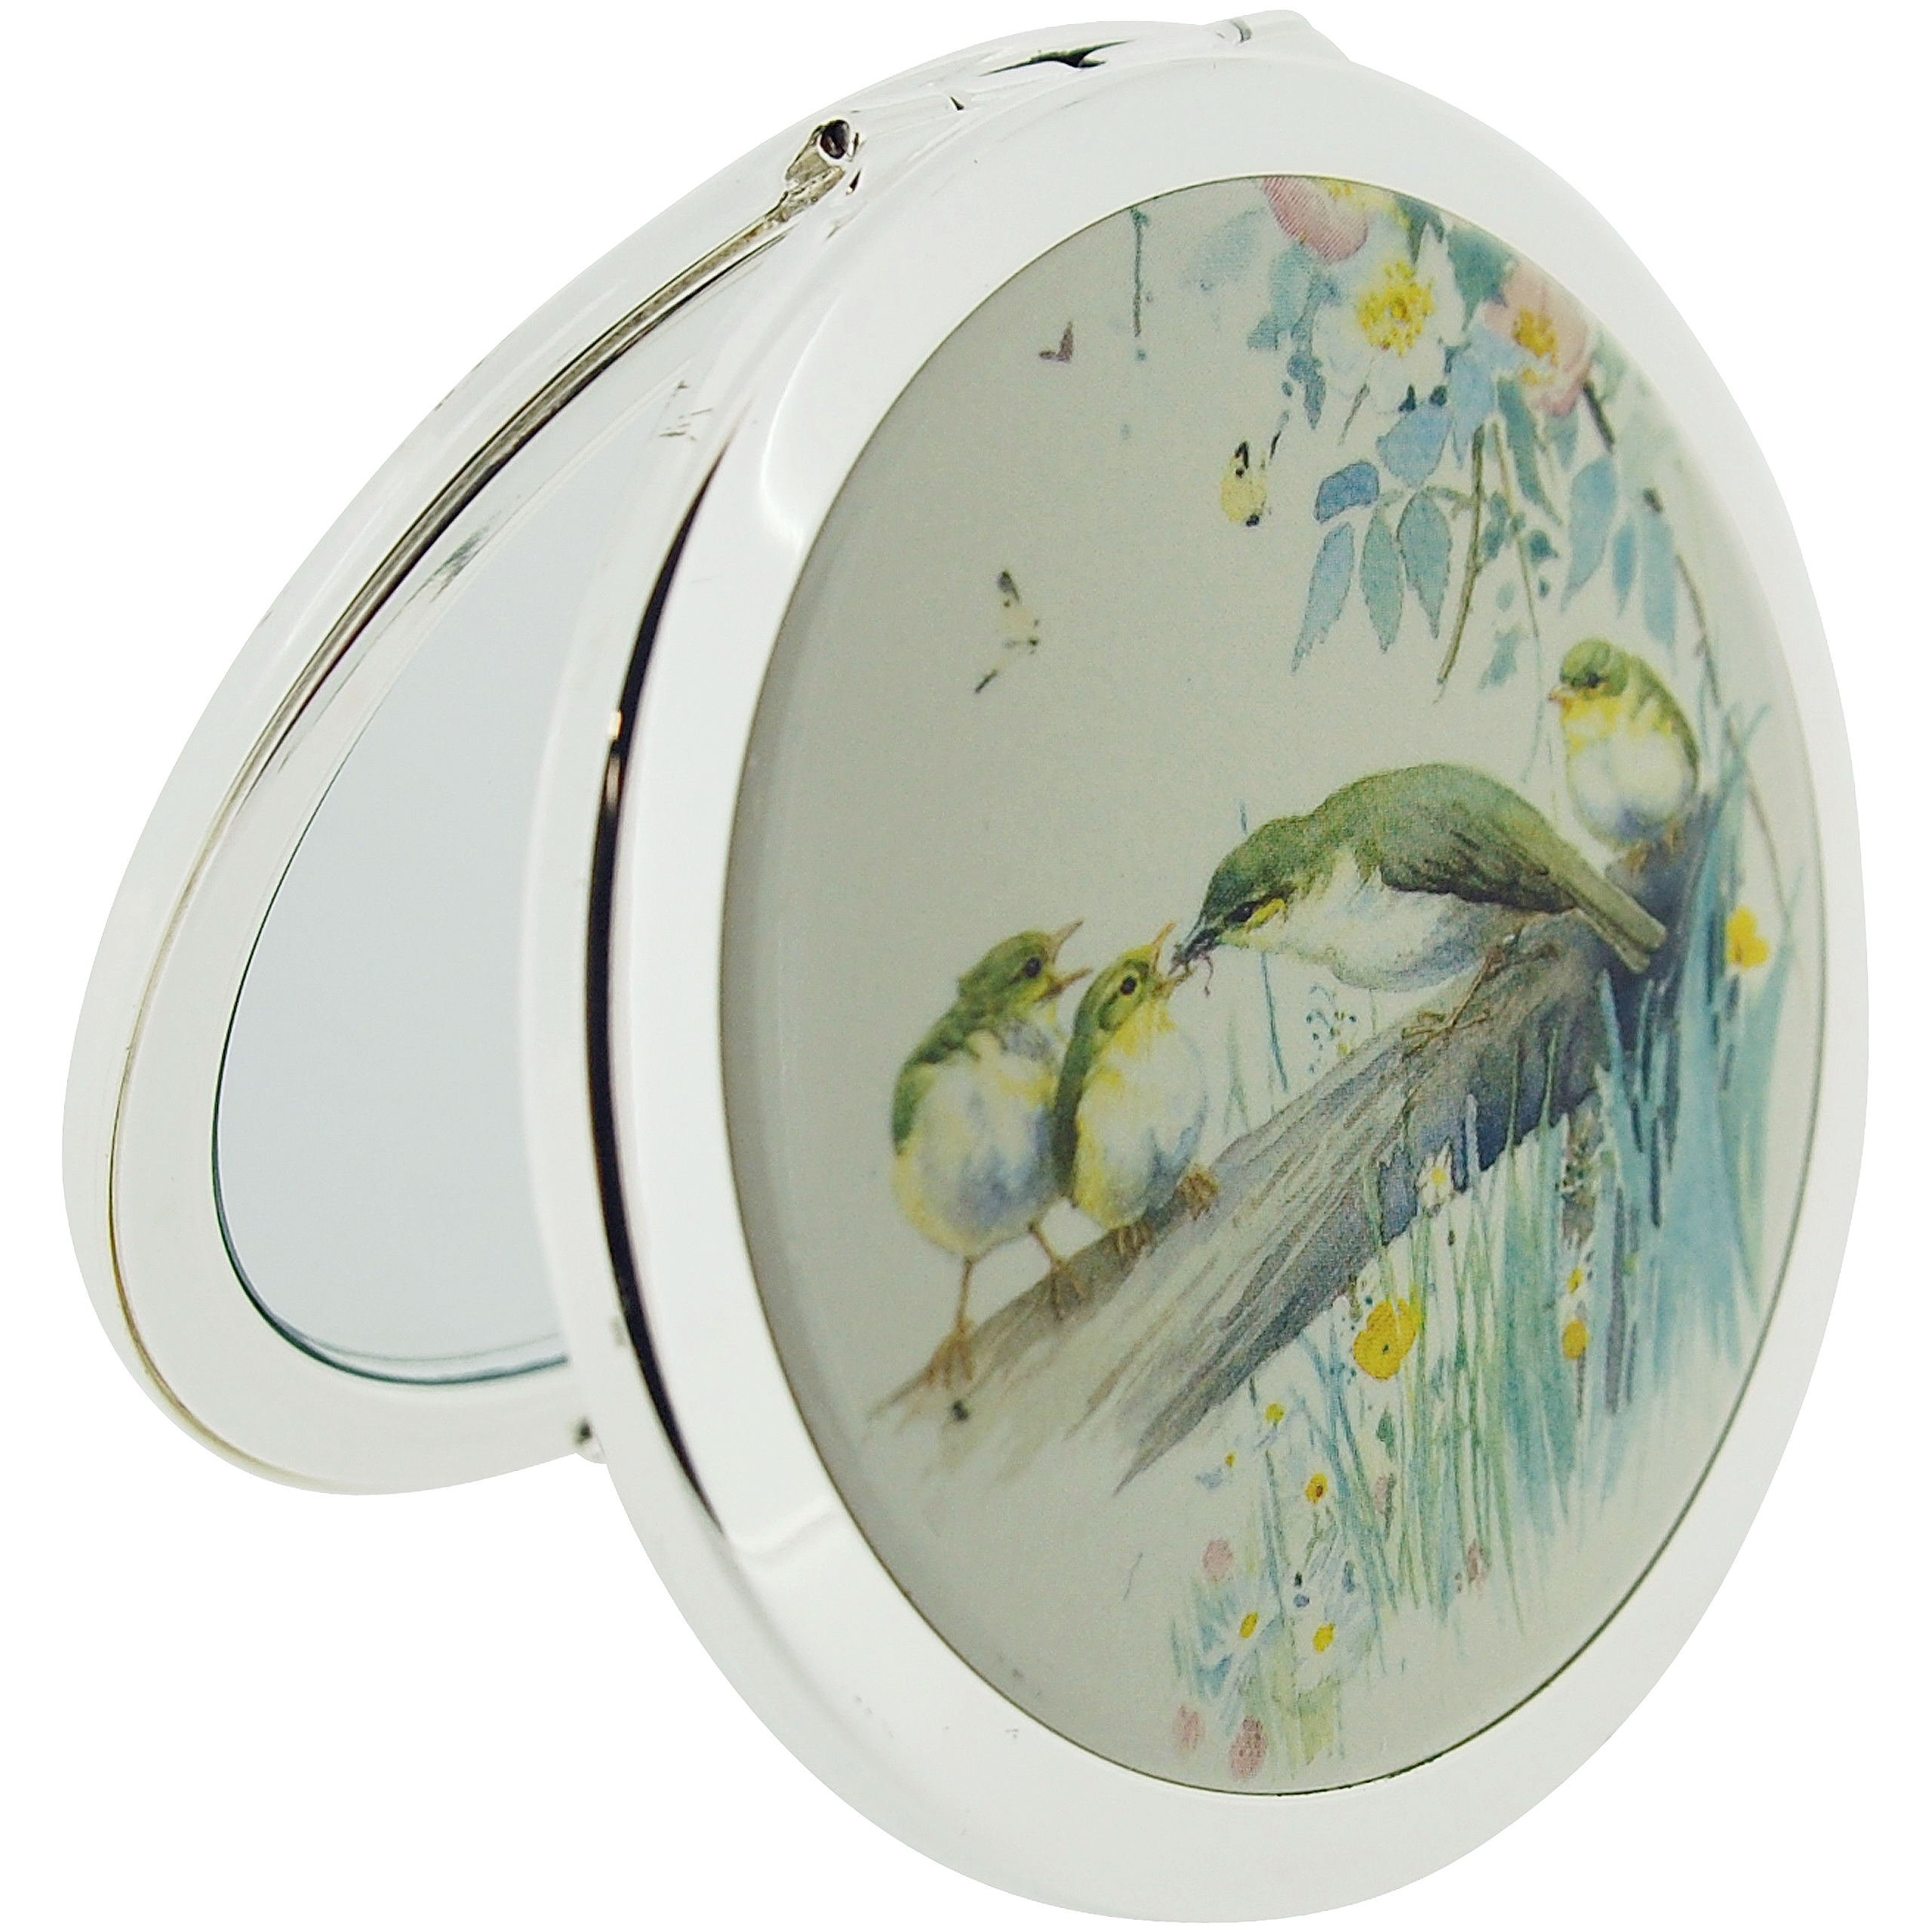 Stratton Compact Mirror Ladies Heritage Collection Double Pocket Mirror 3x Magnification Country Diary Design ST1143